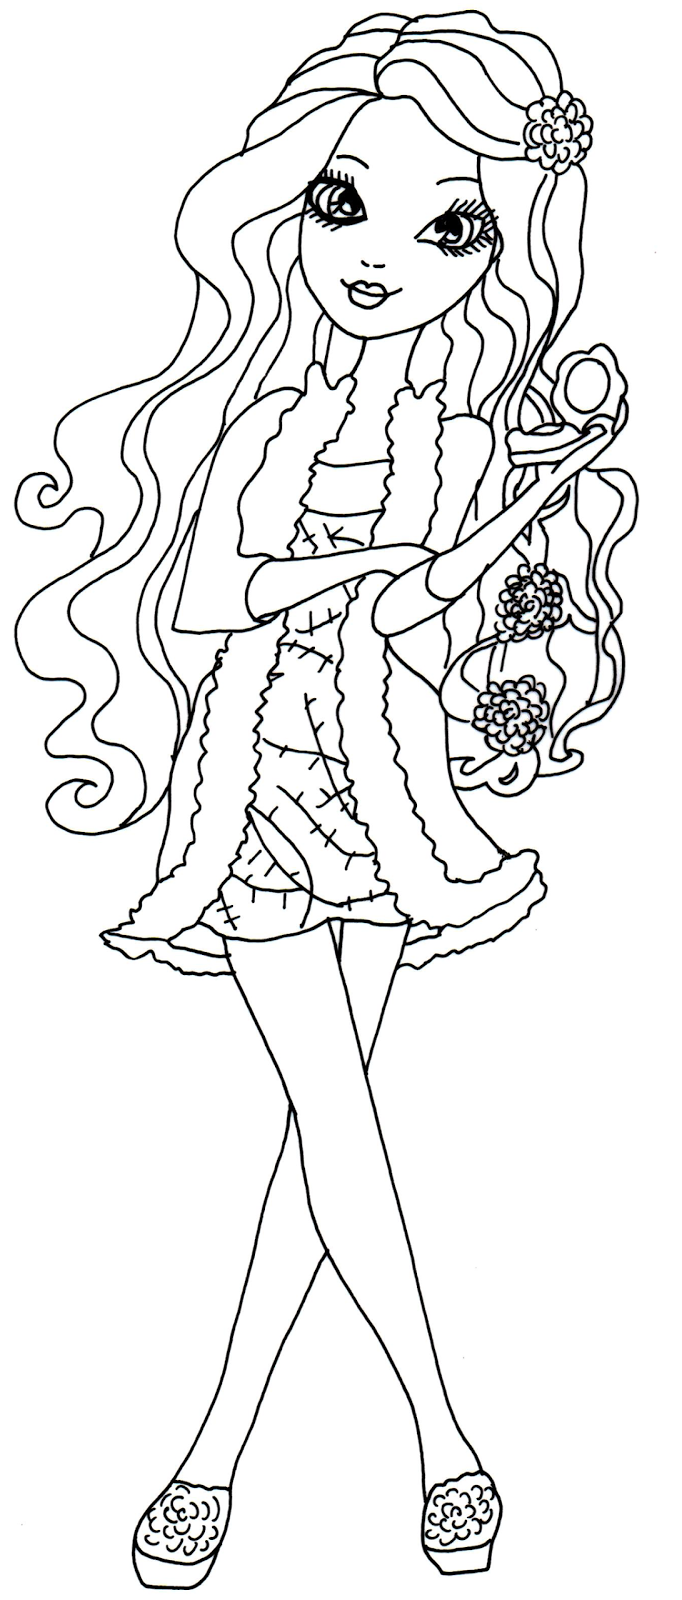 briar+beauty+getting+fairest+coloring+page.png (682×1600) | 2 Color ...